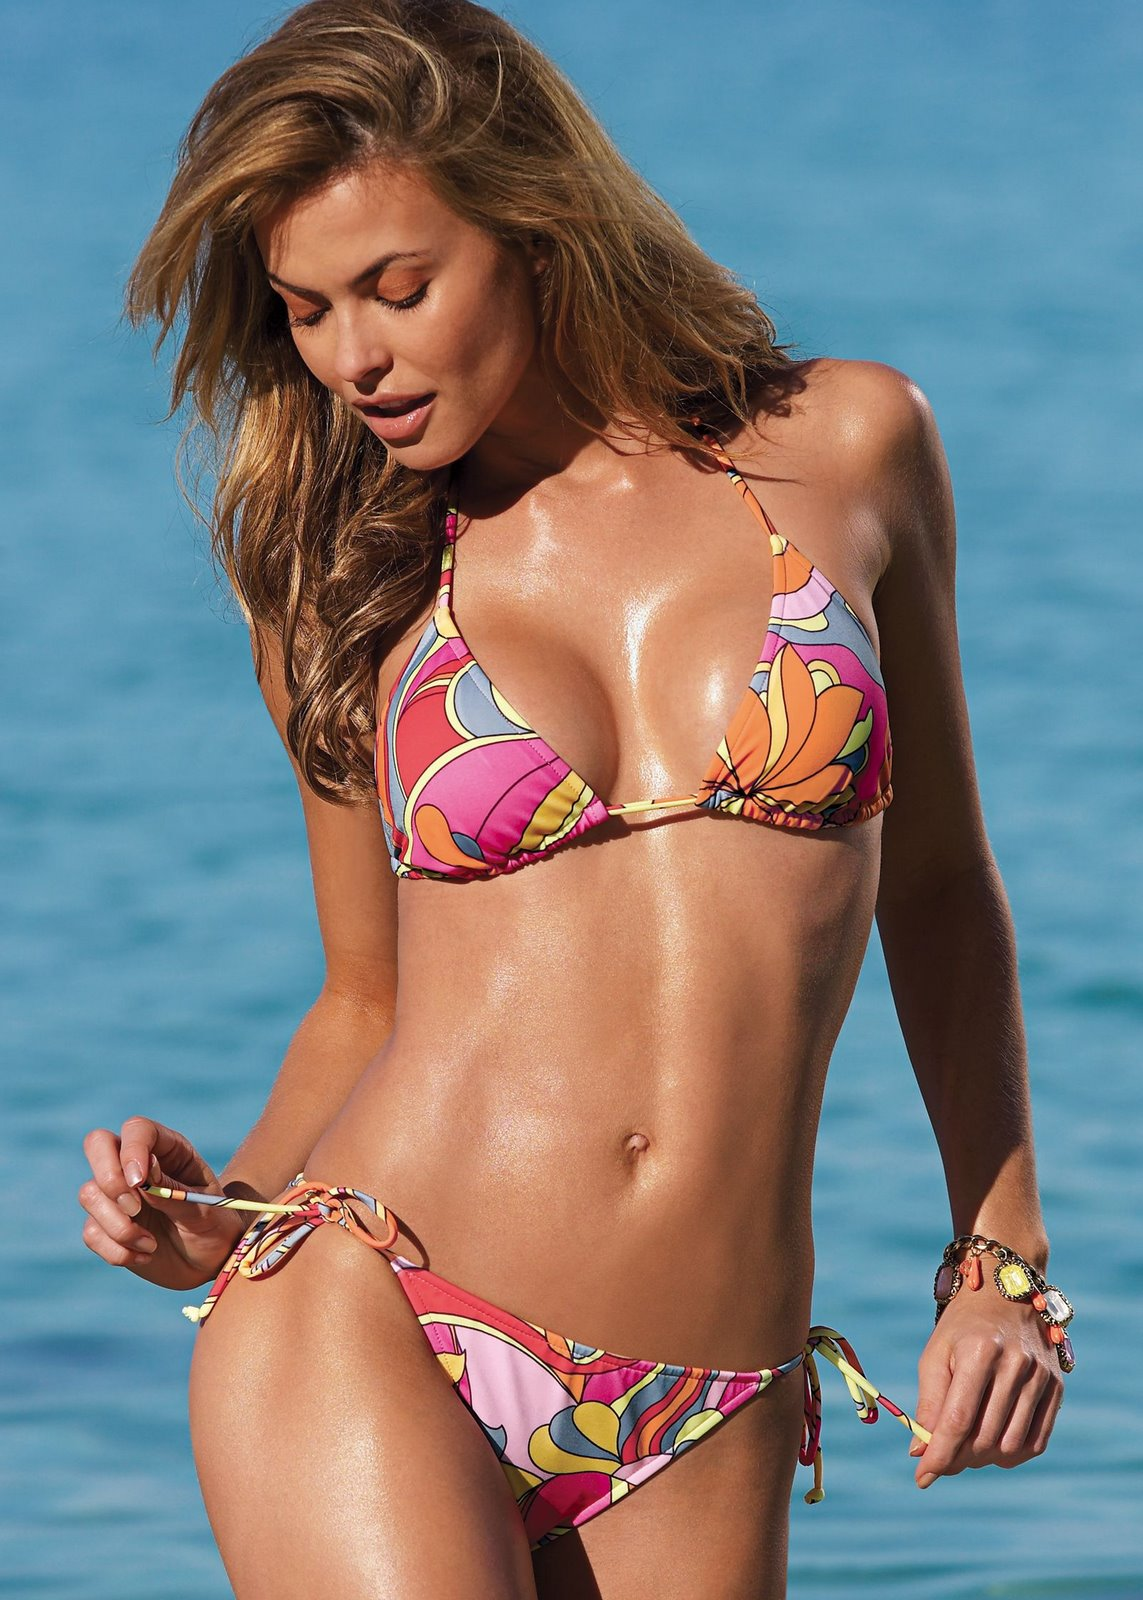 Fotos del bikini de Heath Locklear